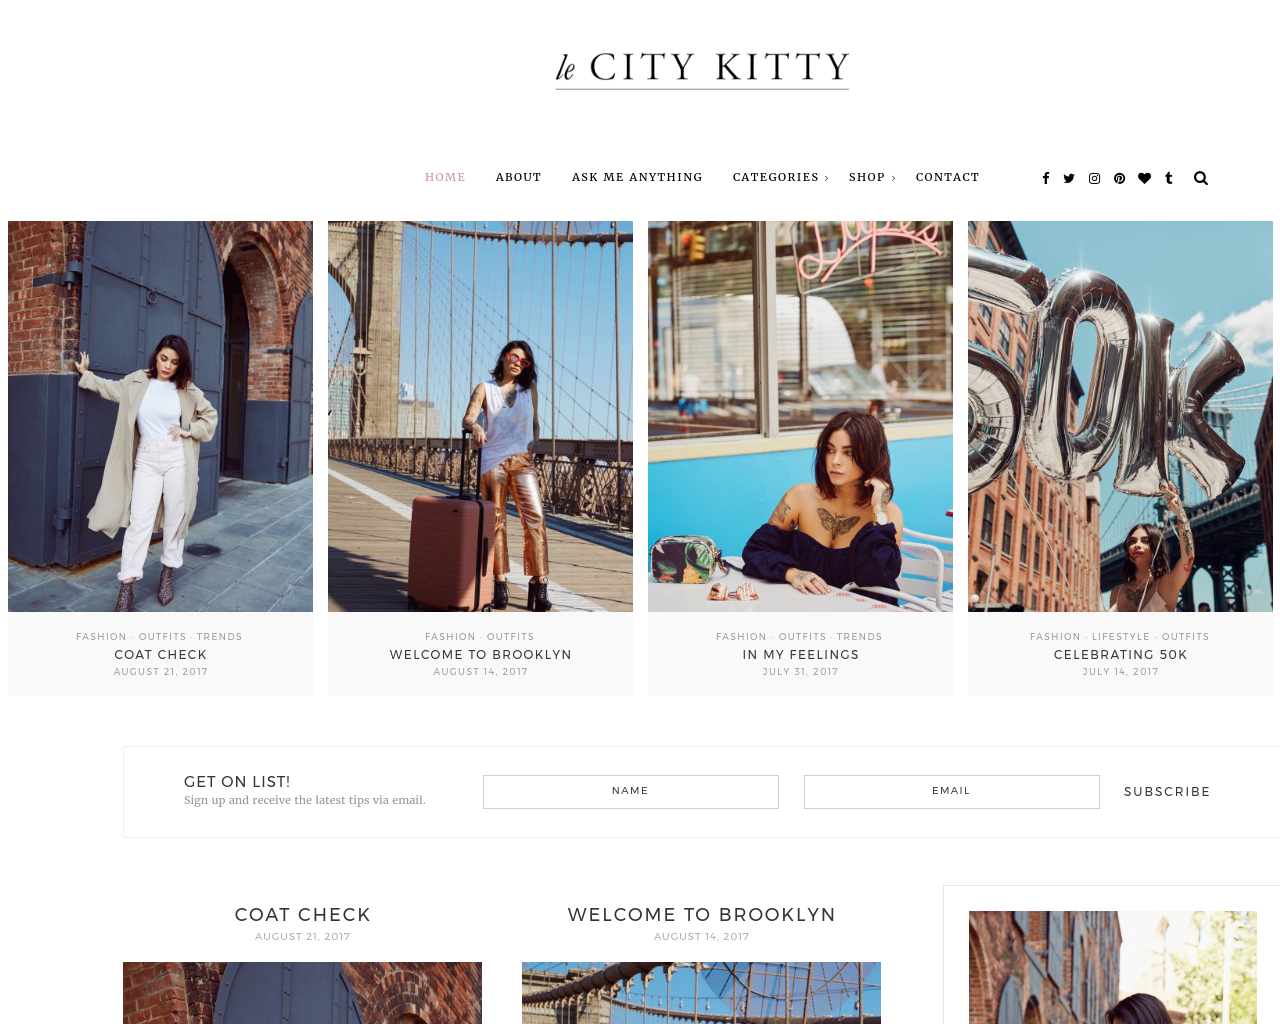 Le-City-Kitty-Advertising-Reviews-Pricing